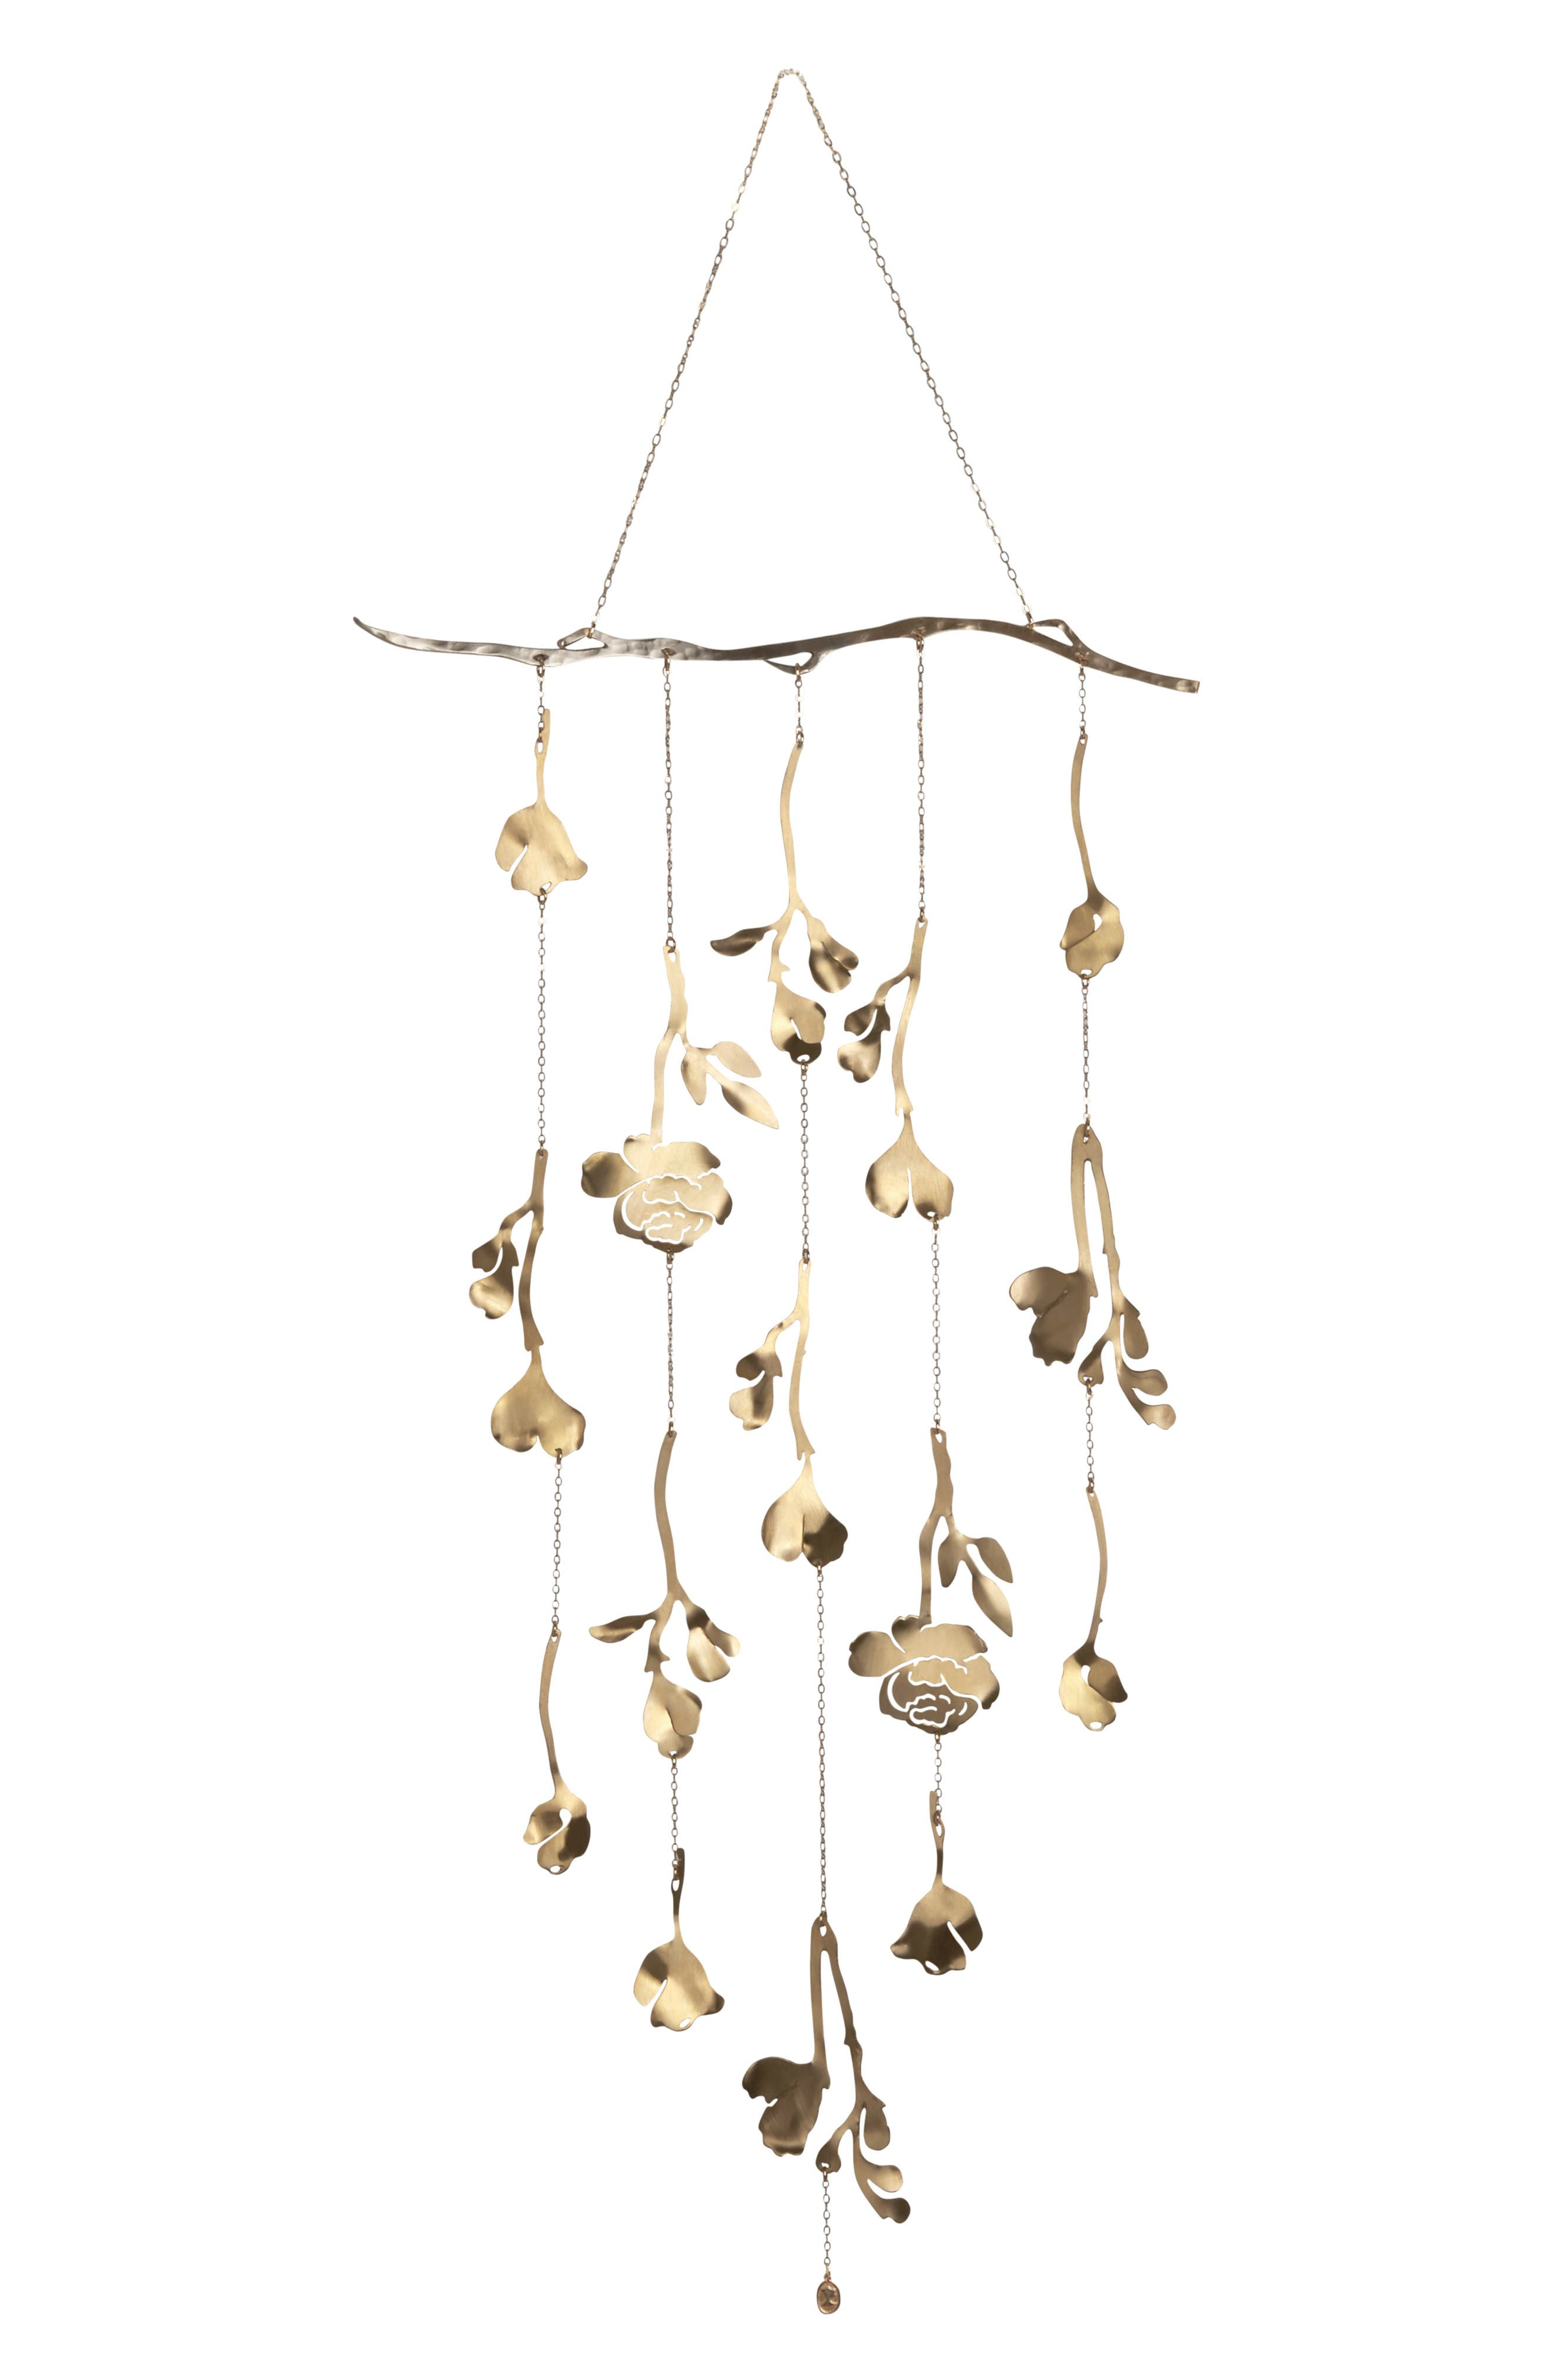 Add a dash of romance to your decor with this ethereal piece crafted with a cascade of chain twigs with delicate flowers and windswept leaves cast in brass. Style Name: Ariana Ost Floral Wall Hanging. Style Number: 5965852. Available in stores.